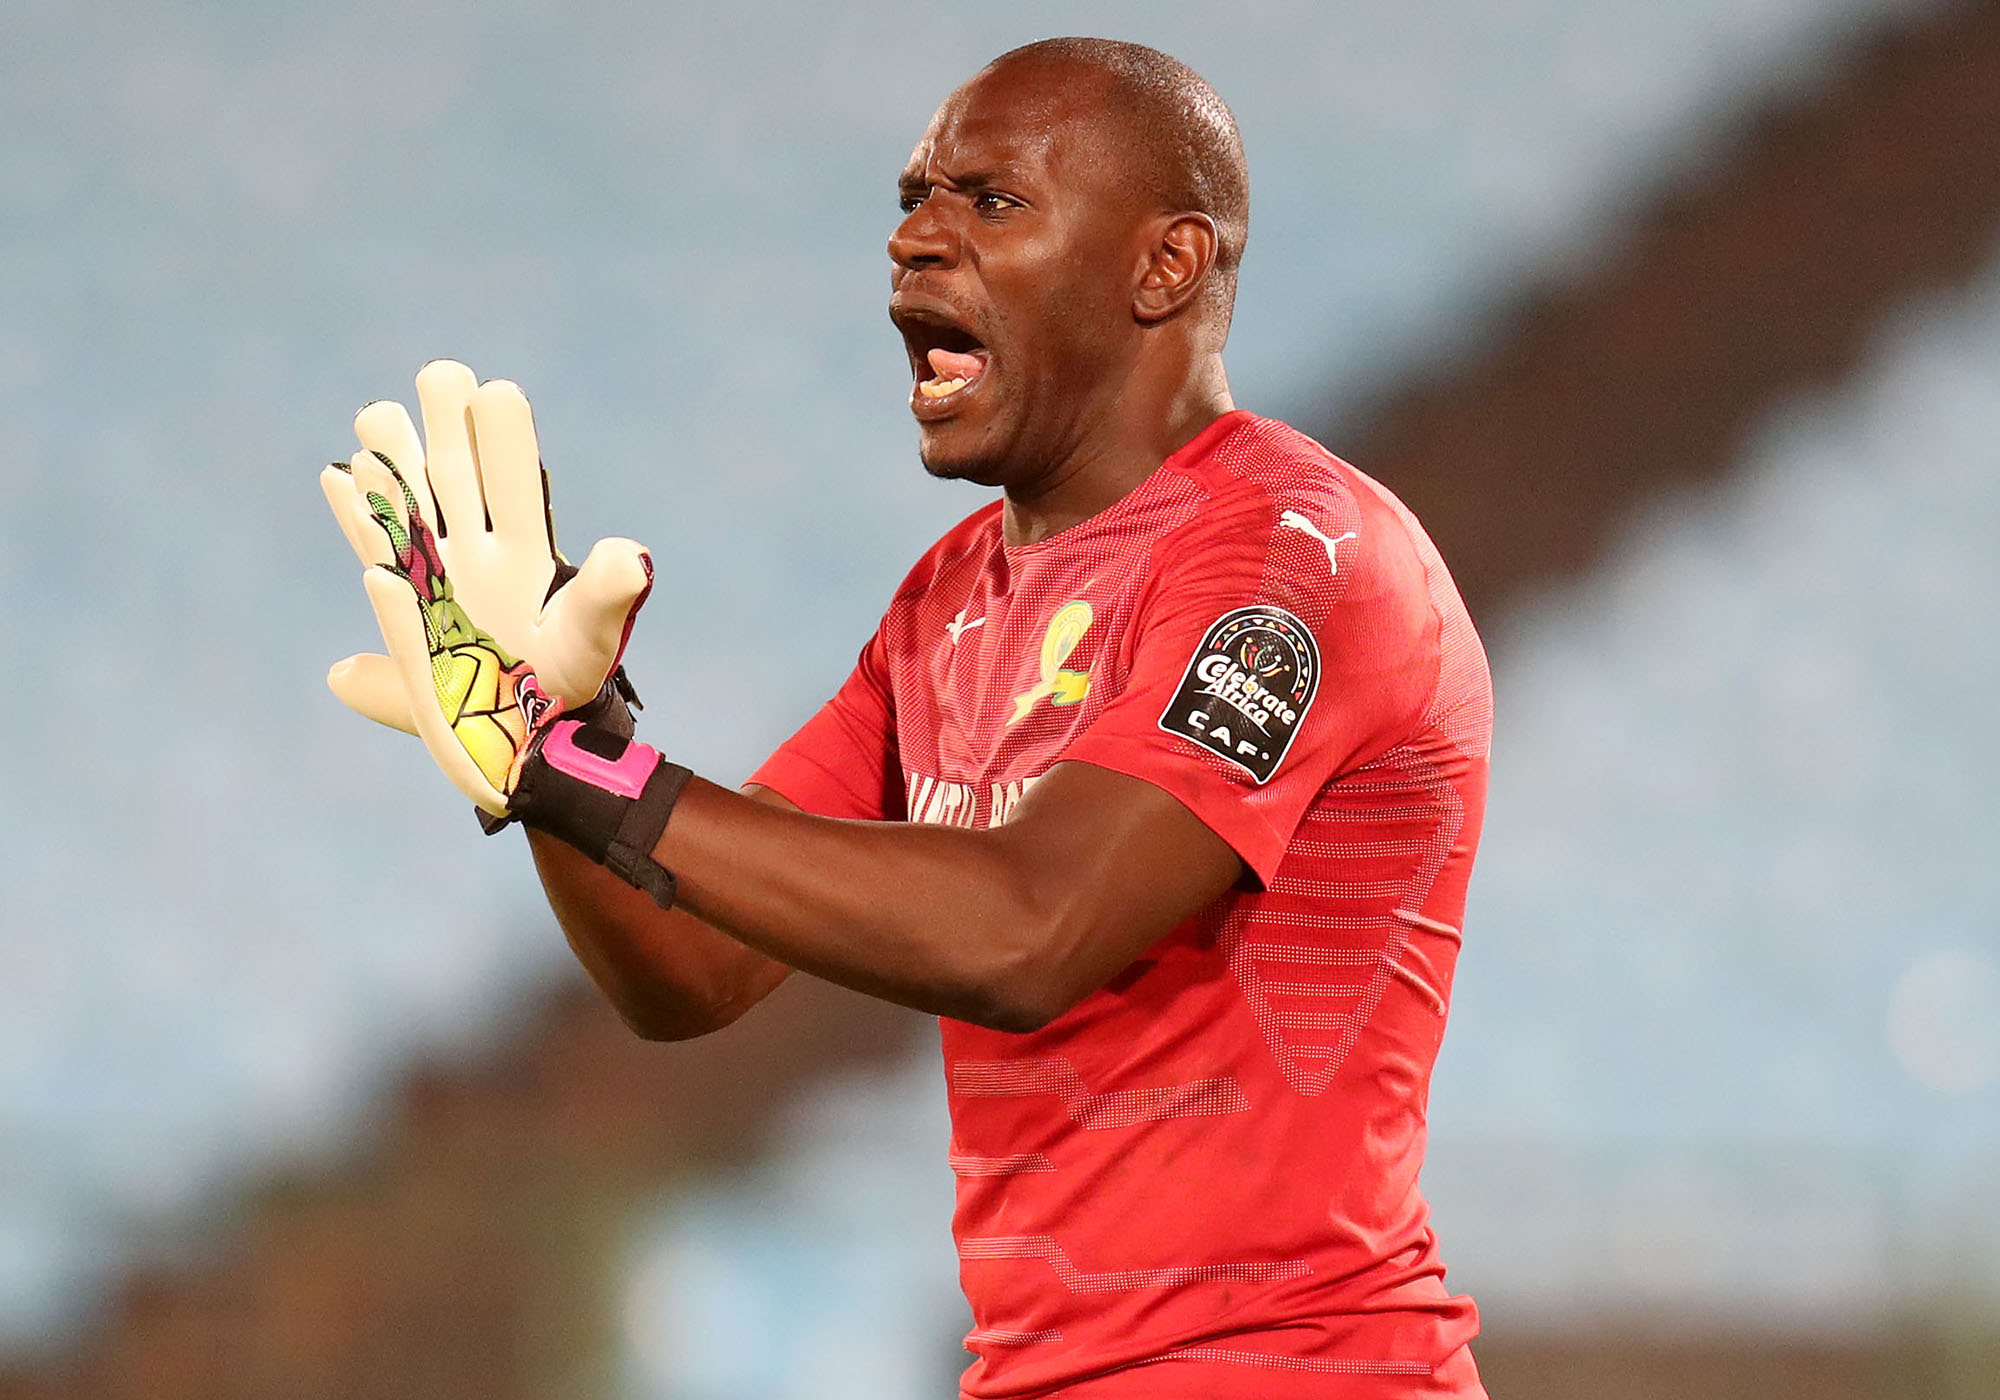 Denis Onyango signs new contract with Mamelodi Sundowns - Eagle Online